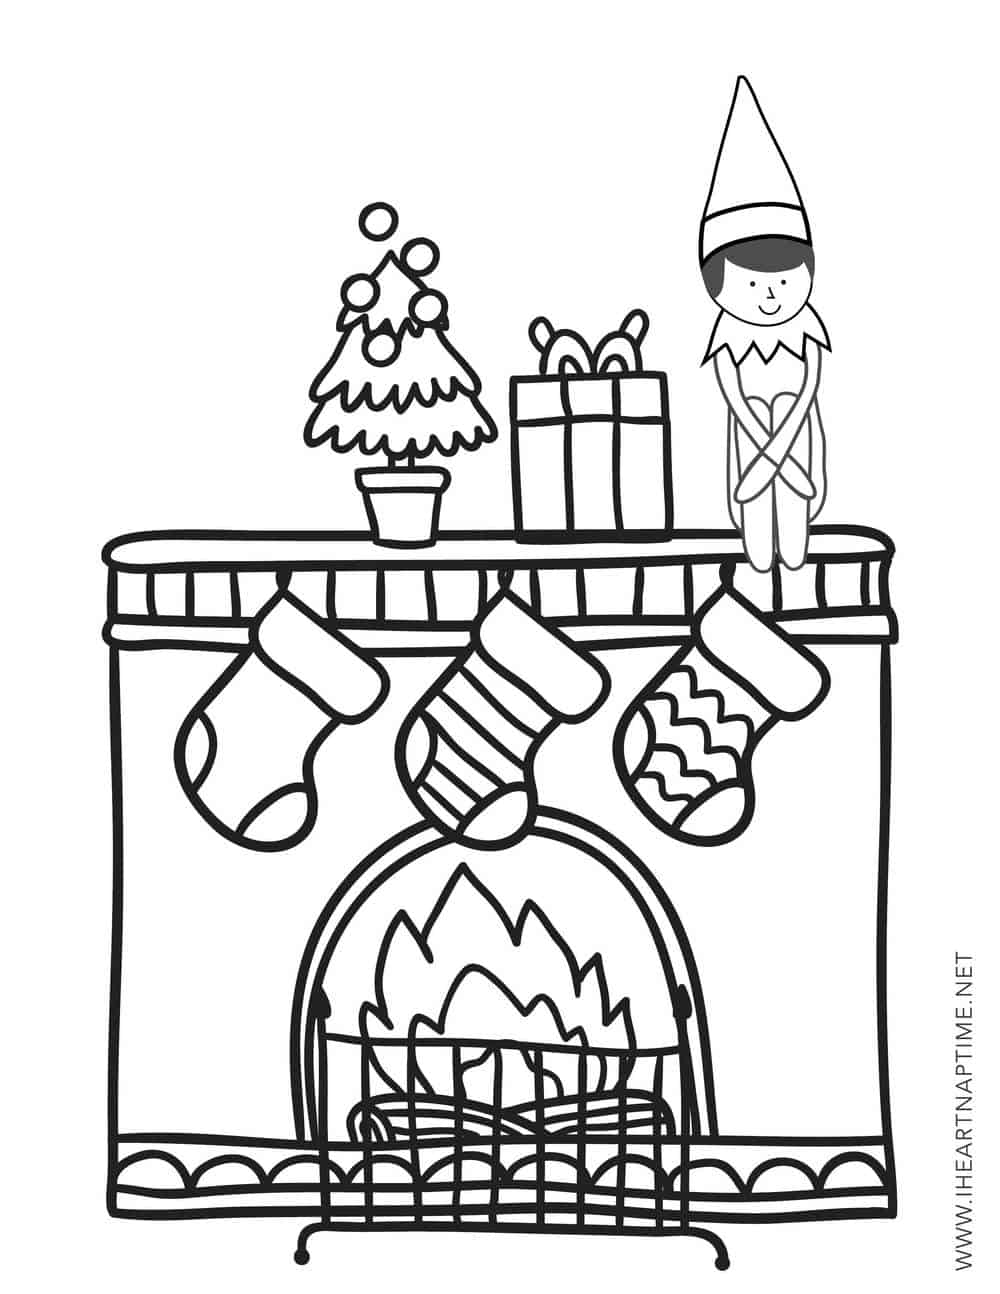 elf on the shelf pictures to color 7 elf on the shelf inspired coloring pages to get kids to shelf color on the elf pictures